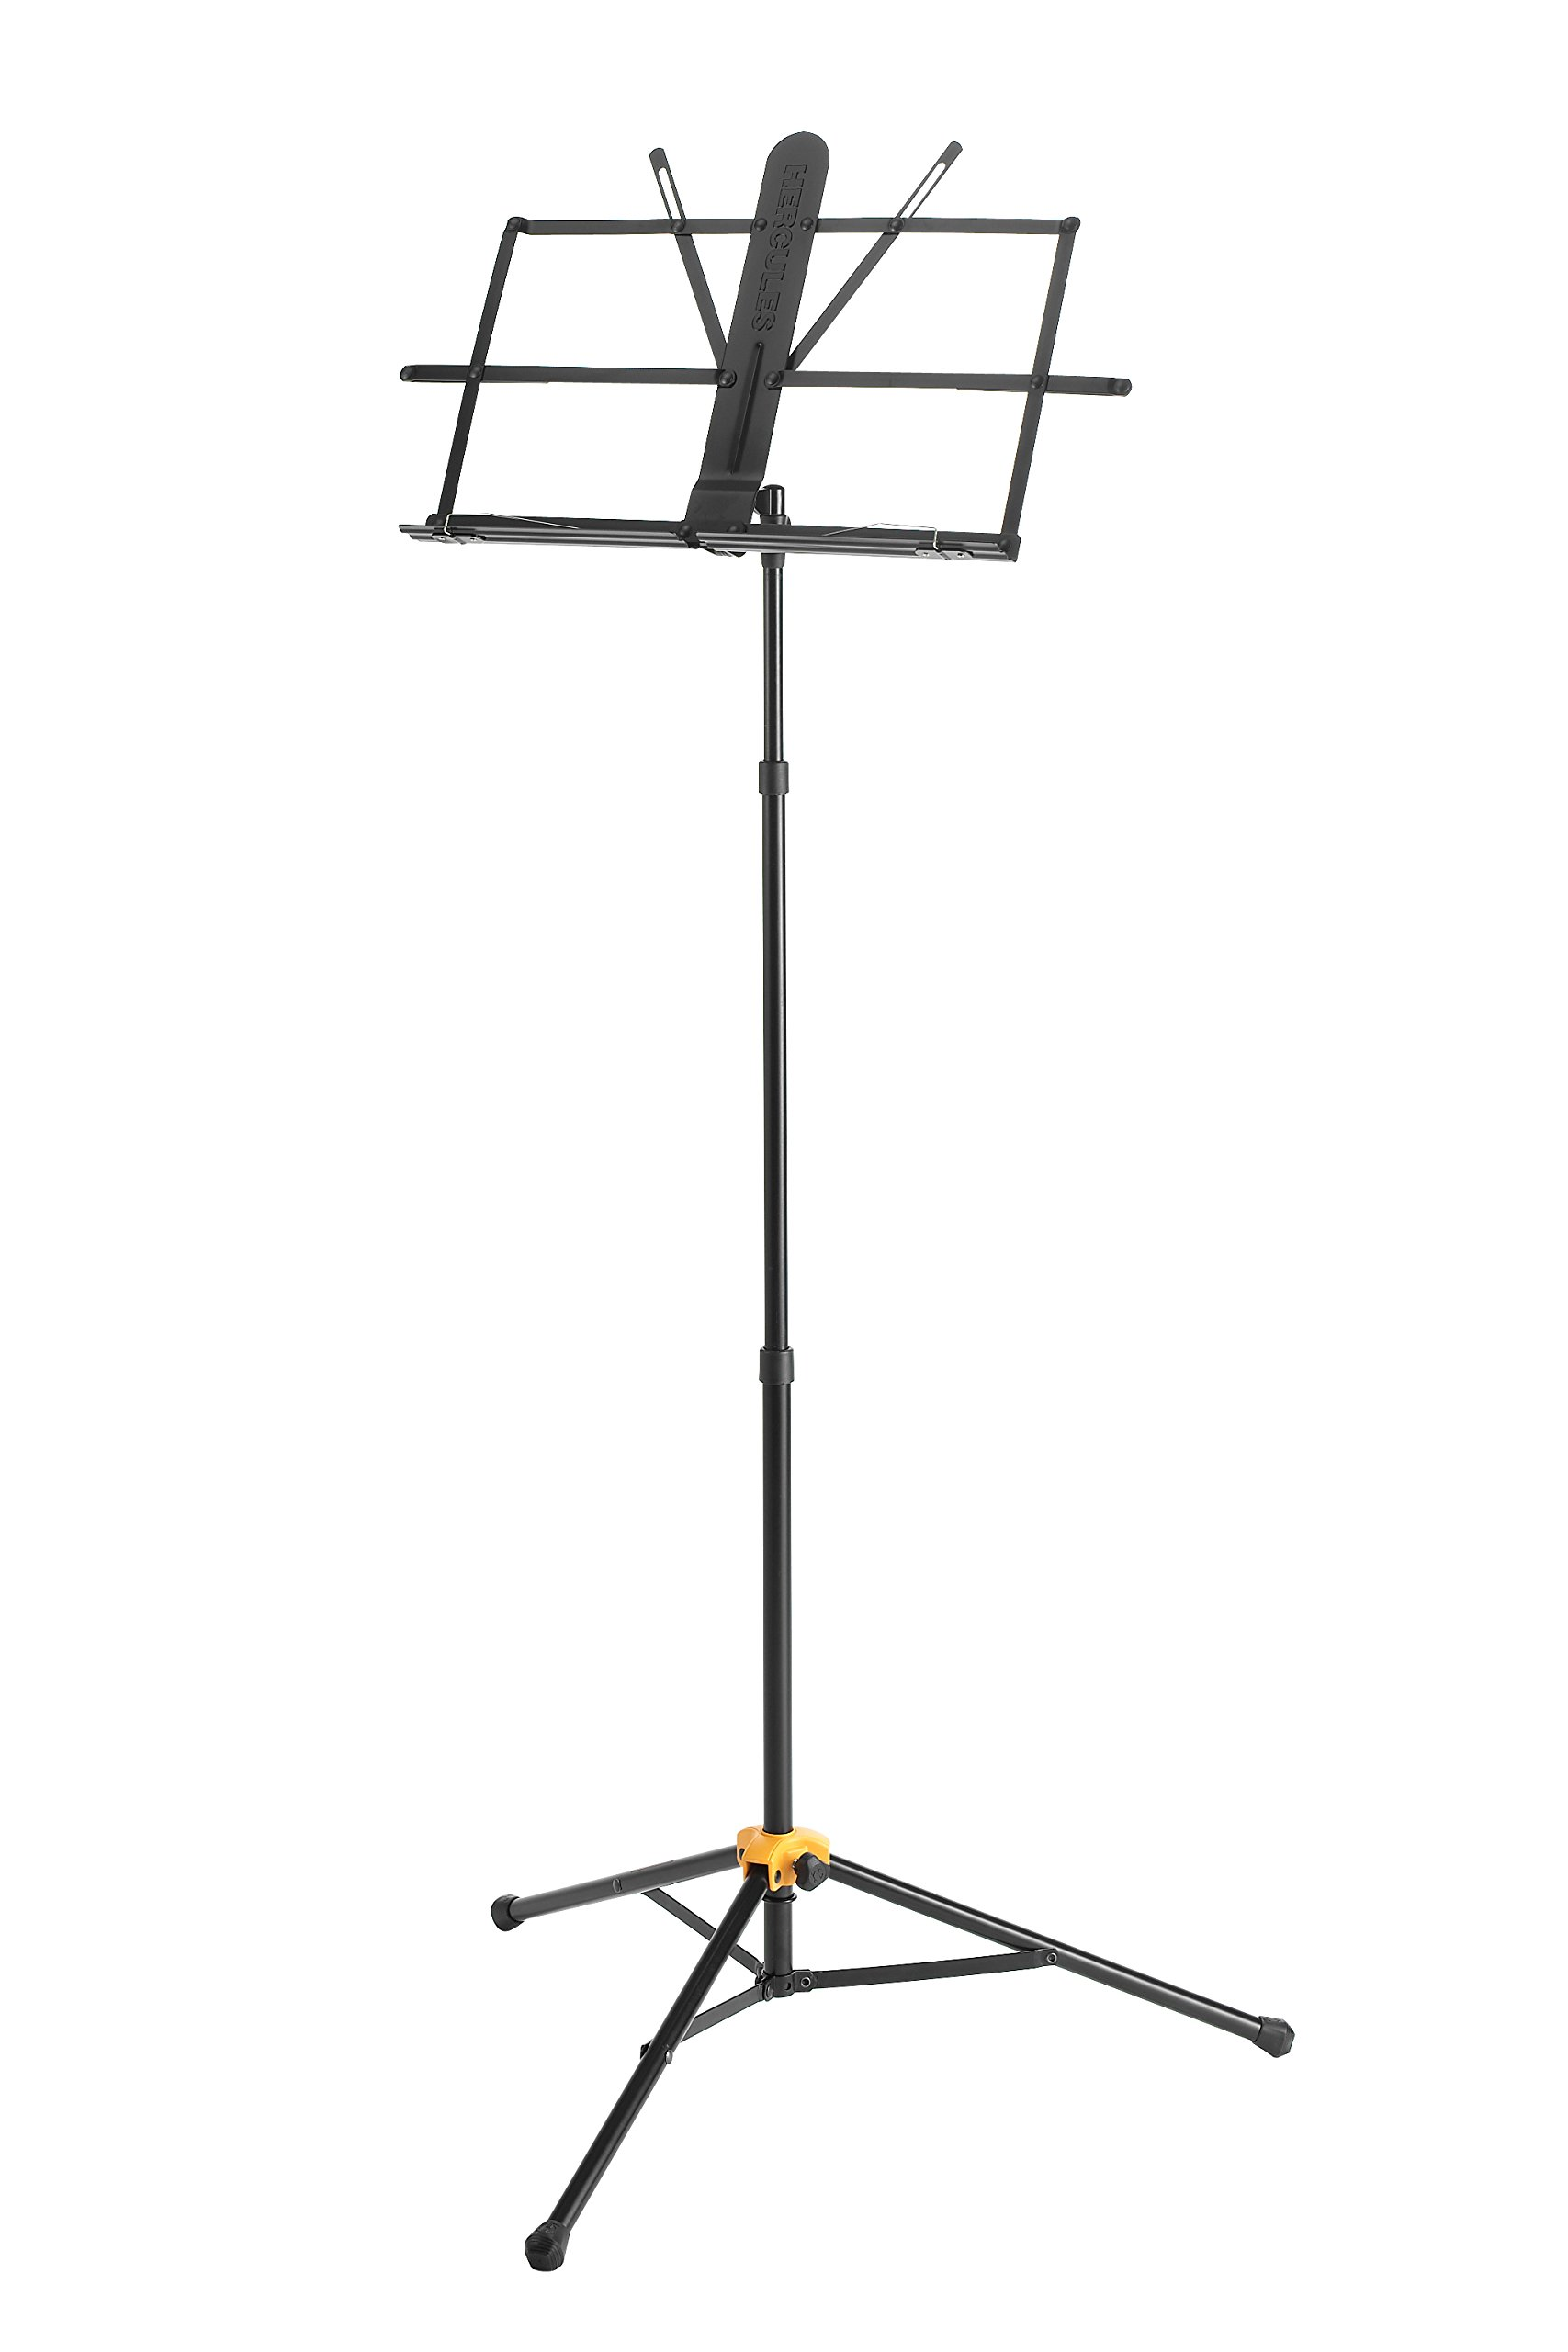 4dfafc77c58 Best Rated in Music Stands   Helpful Customer Reviews - Amazon.co.uk